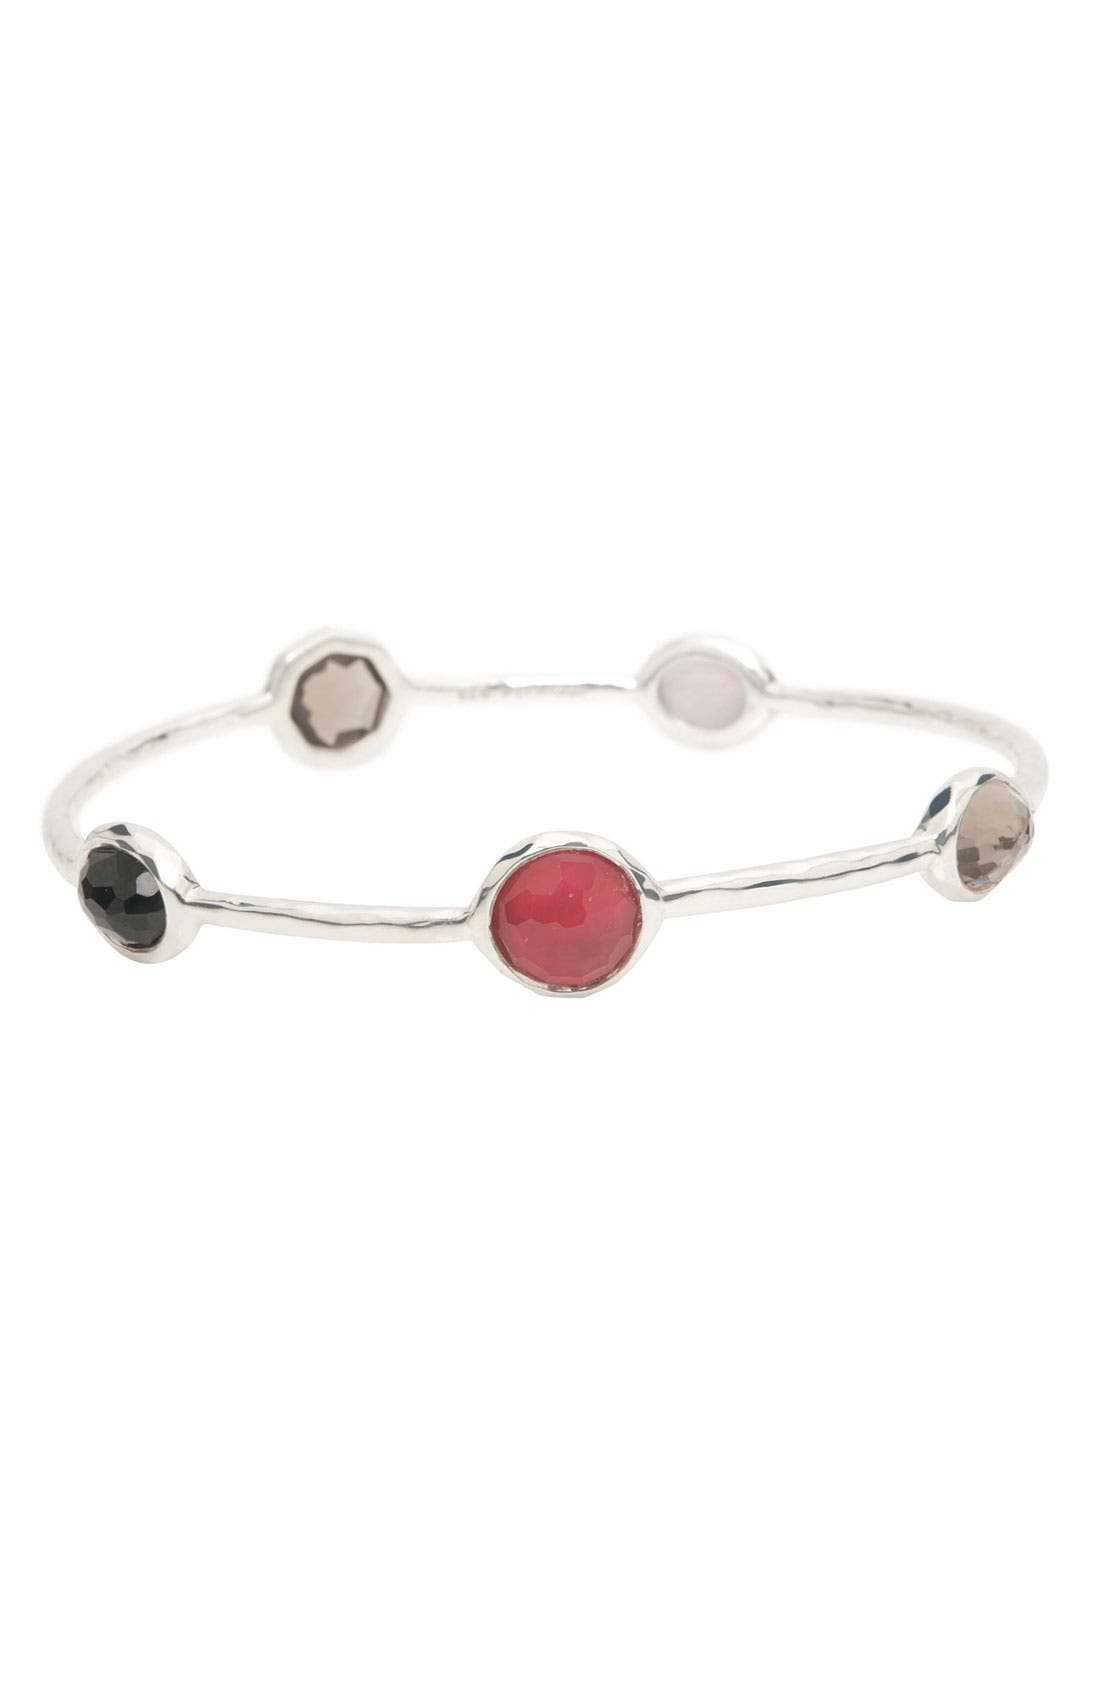 5-Stone Bangle,                             Main thumbnail 1, color,                             Sterling Silver